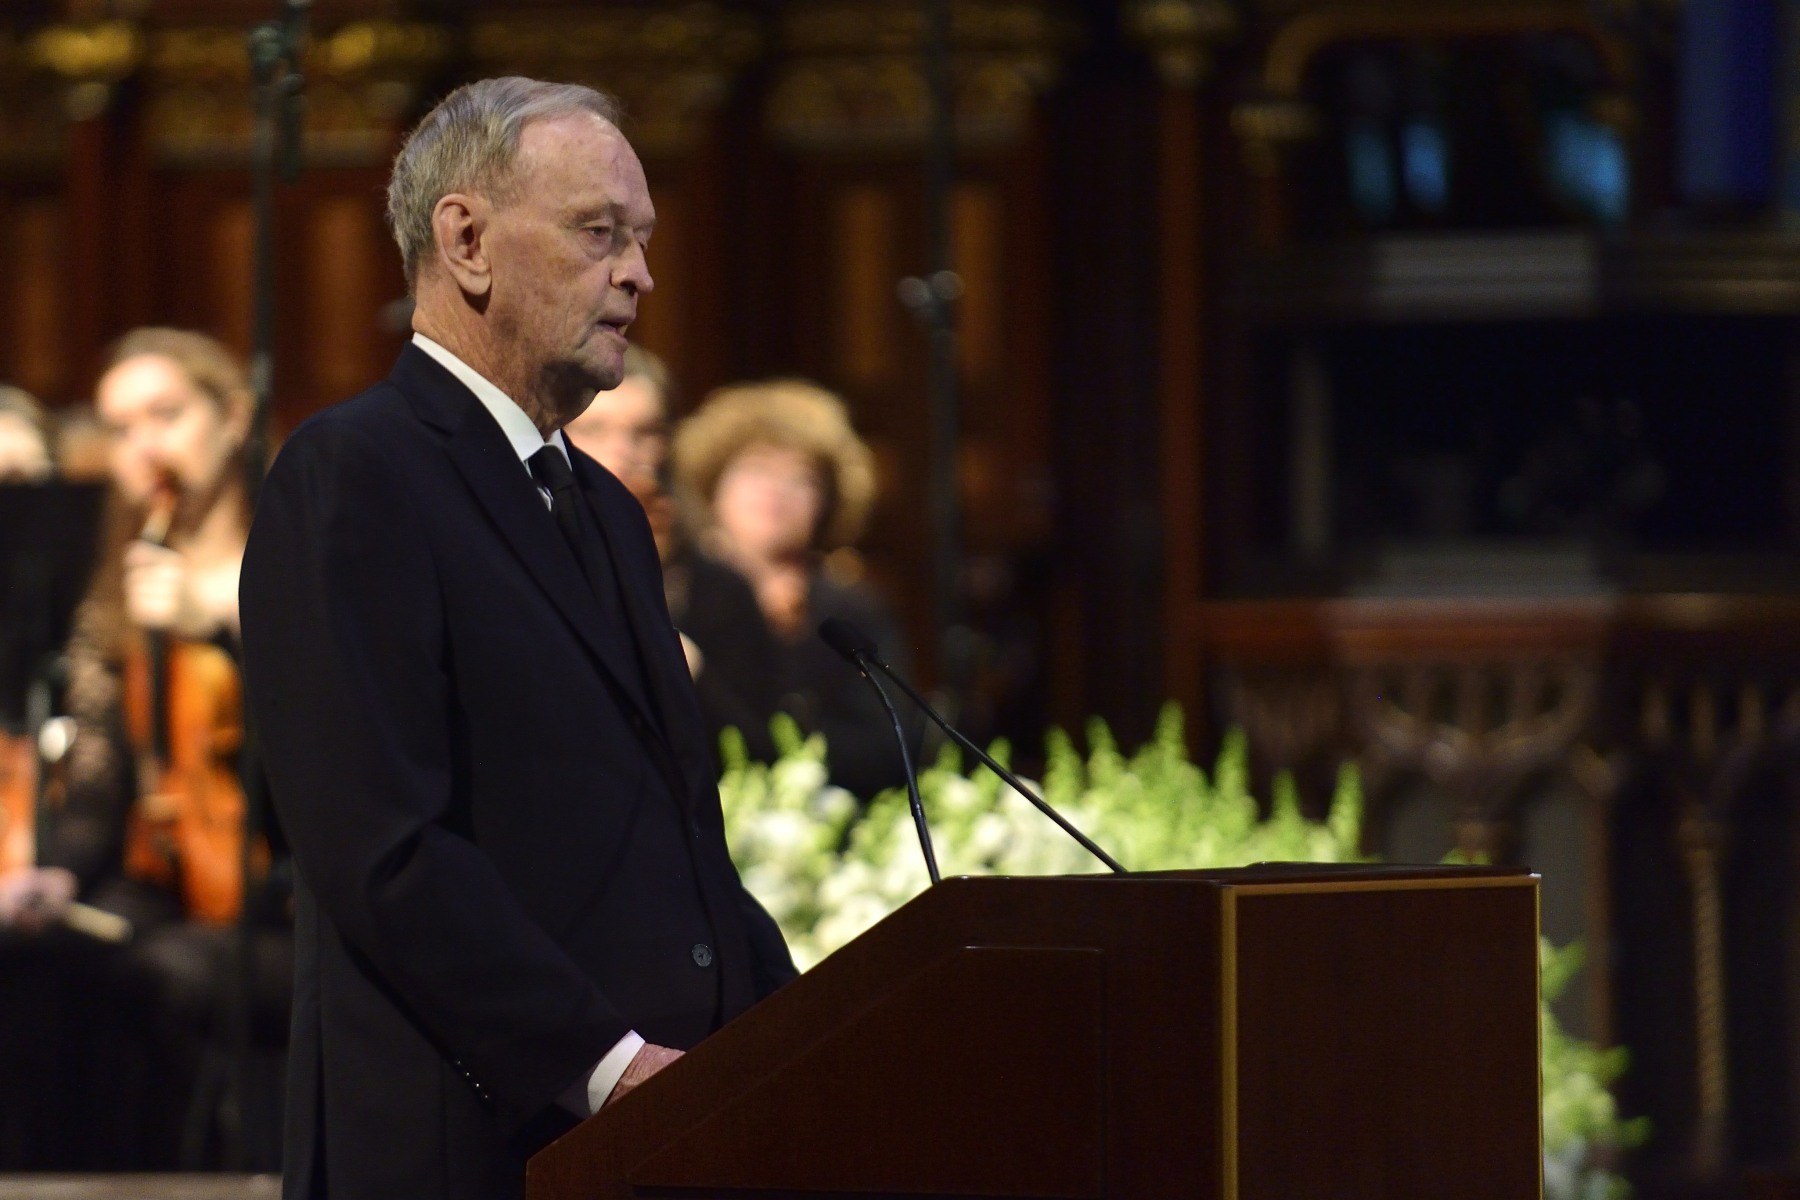 Former Prime Minister of Canada the Honourable Jean Chrétien (1993-2003) honoured this great Canadian businessman.